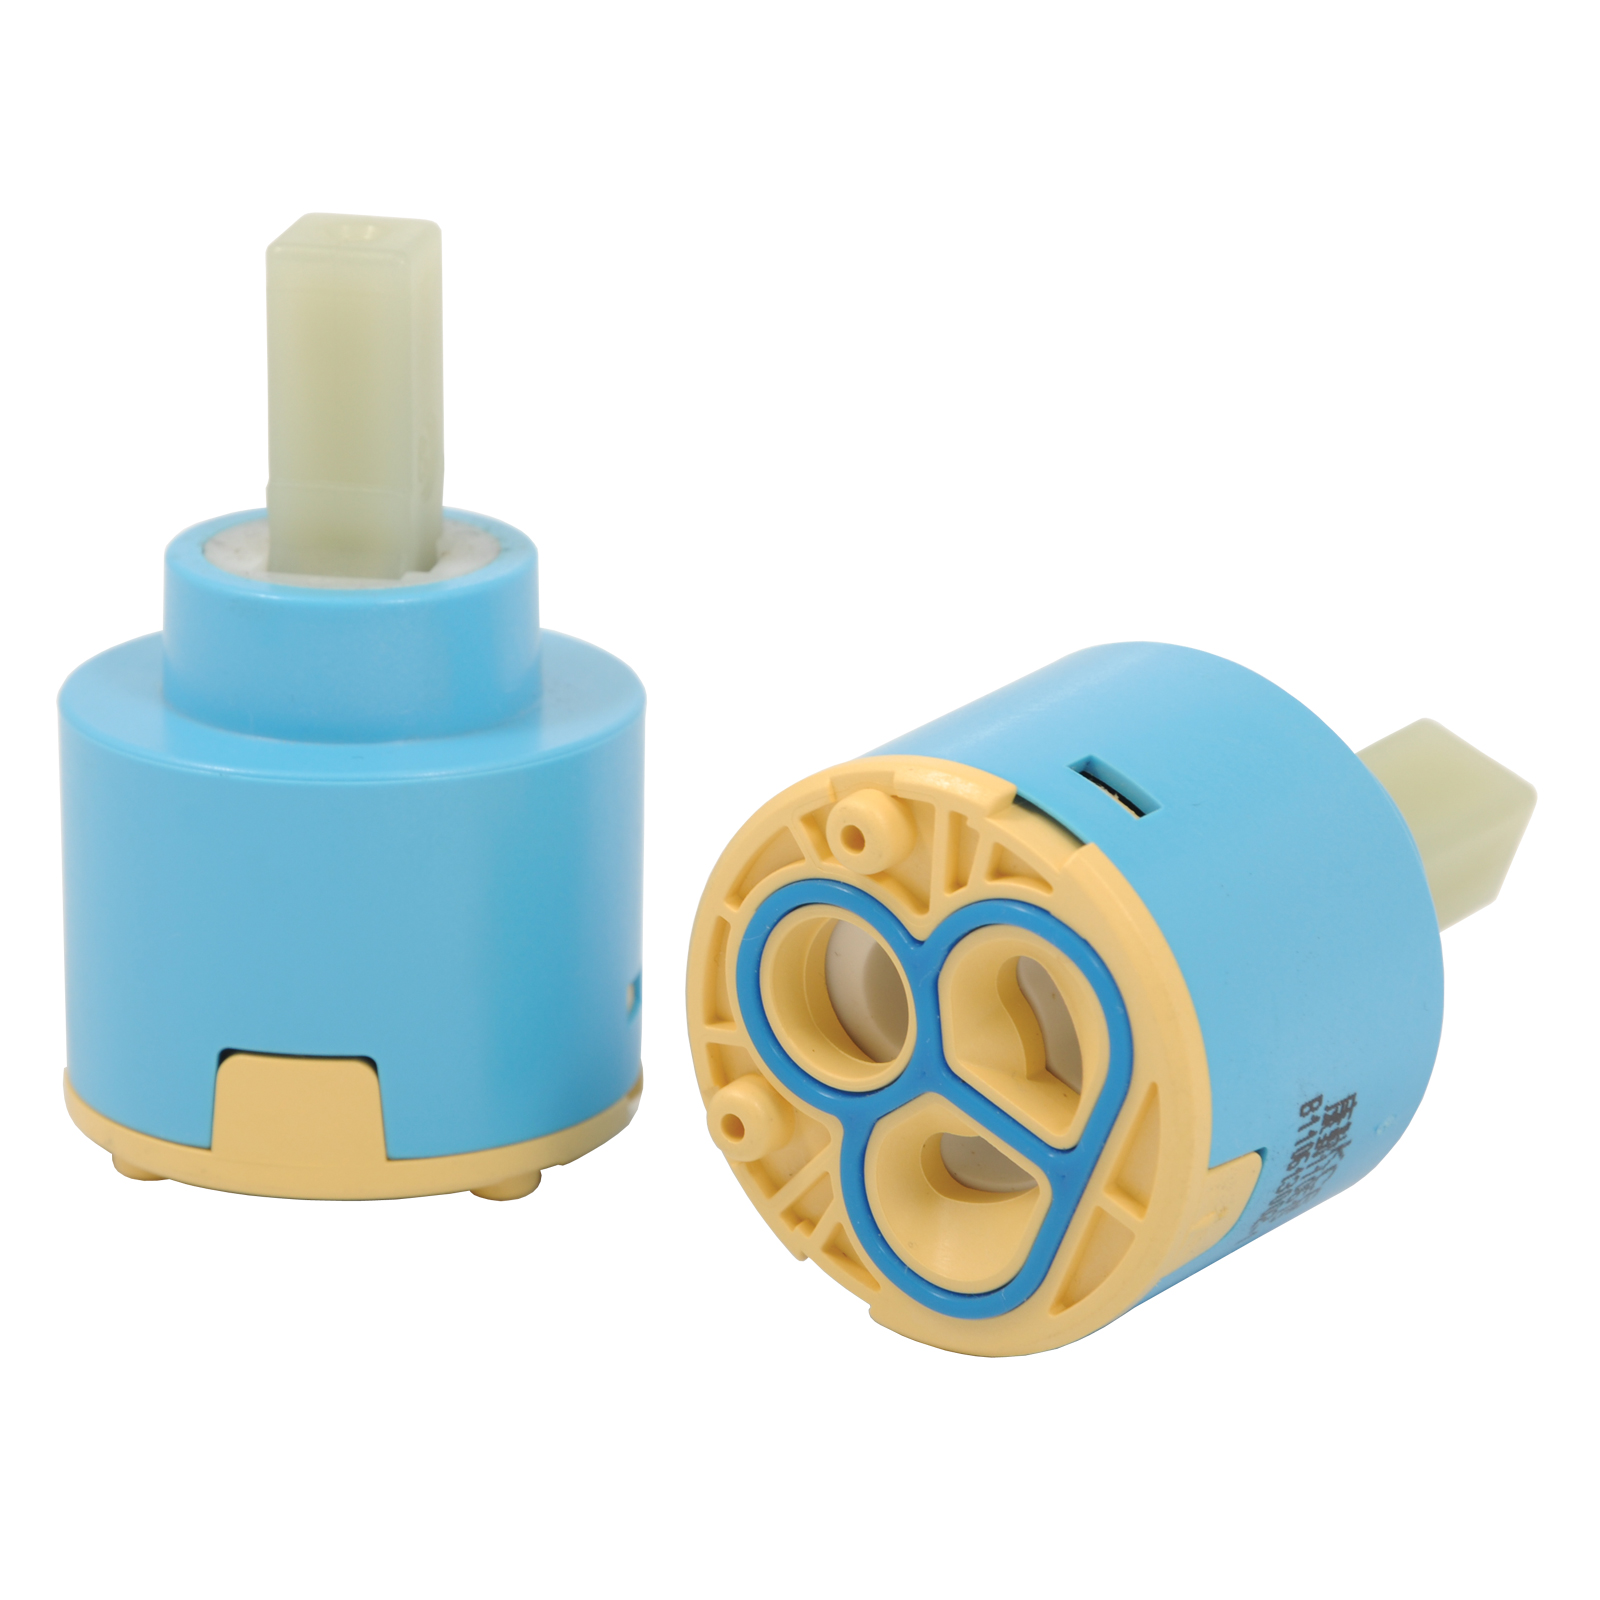 40mm Ceramic Single Lever Cartridge